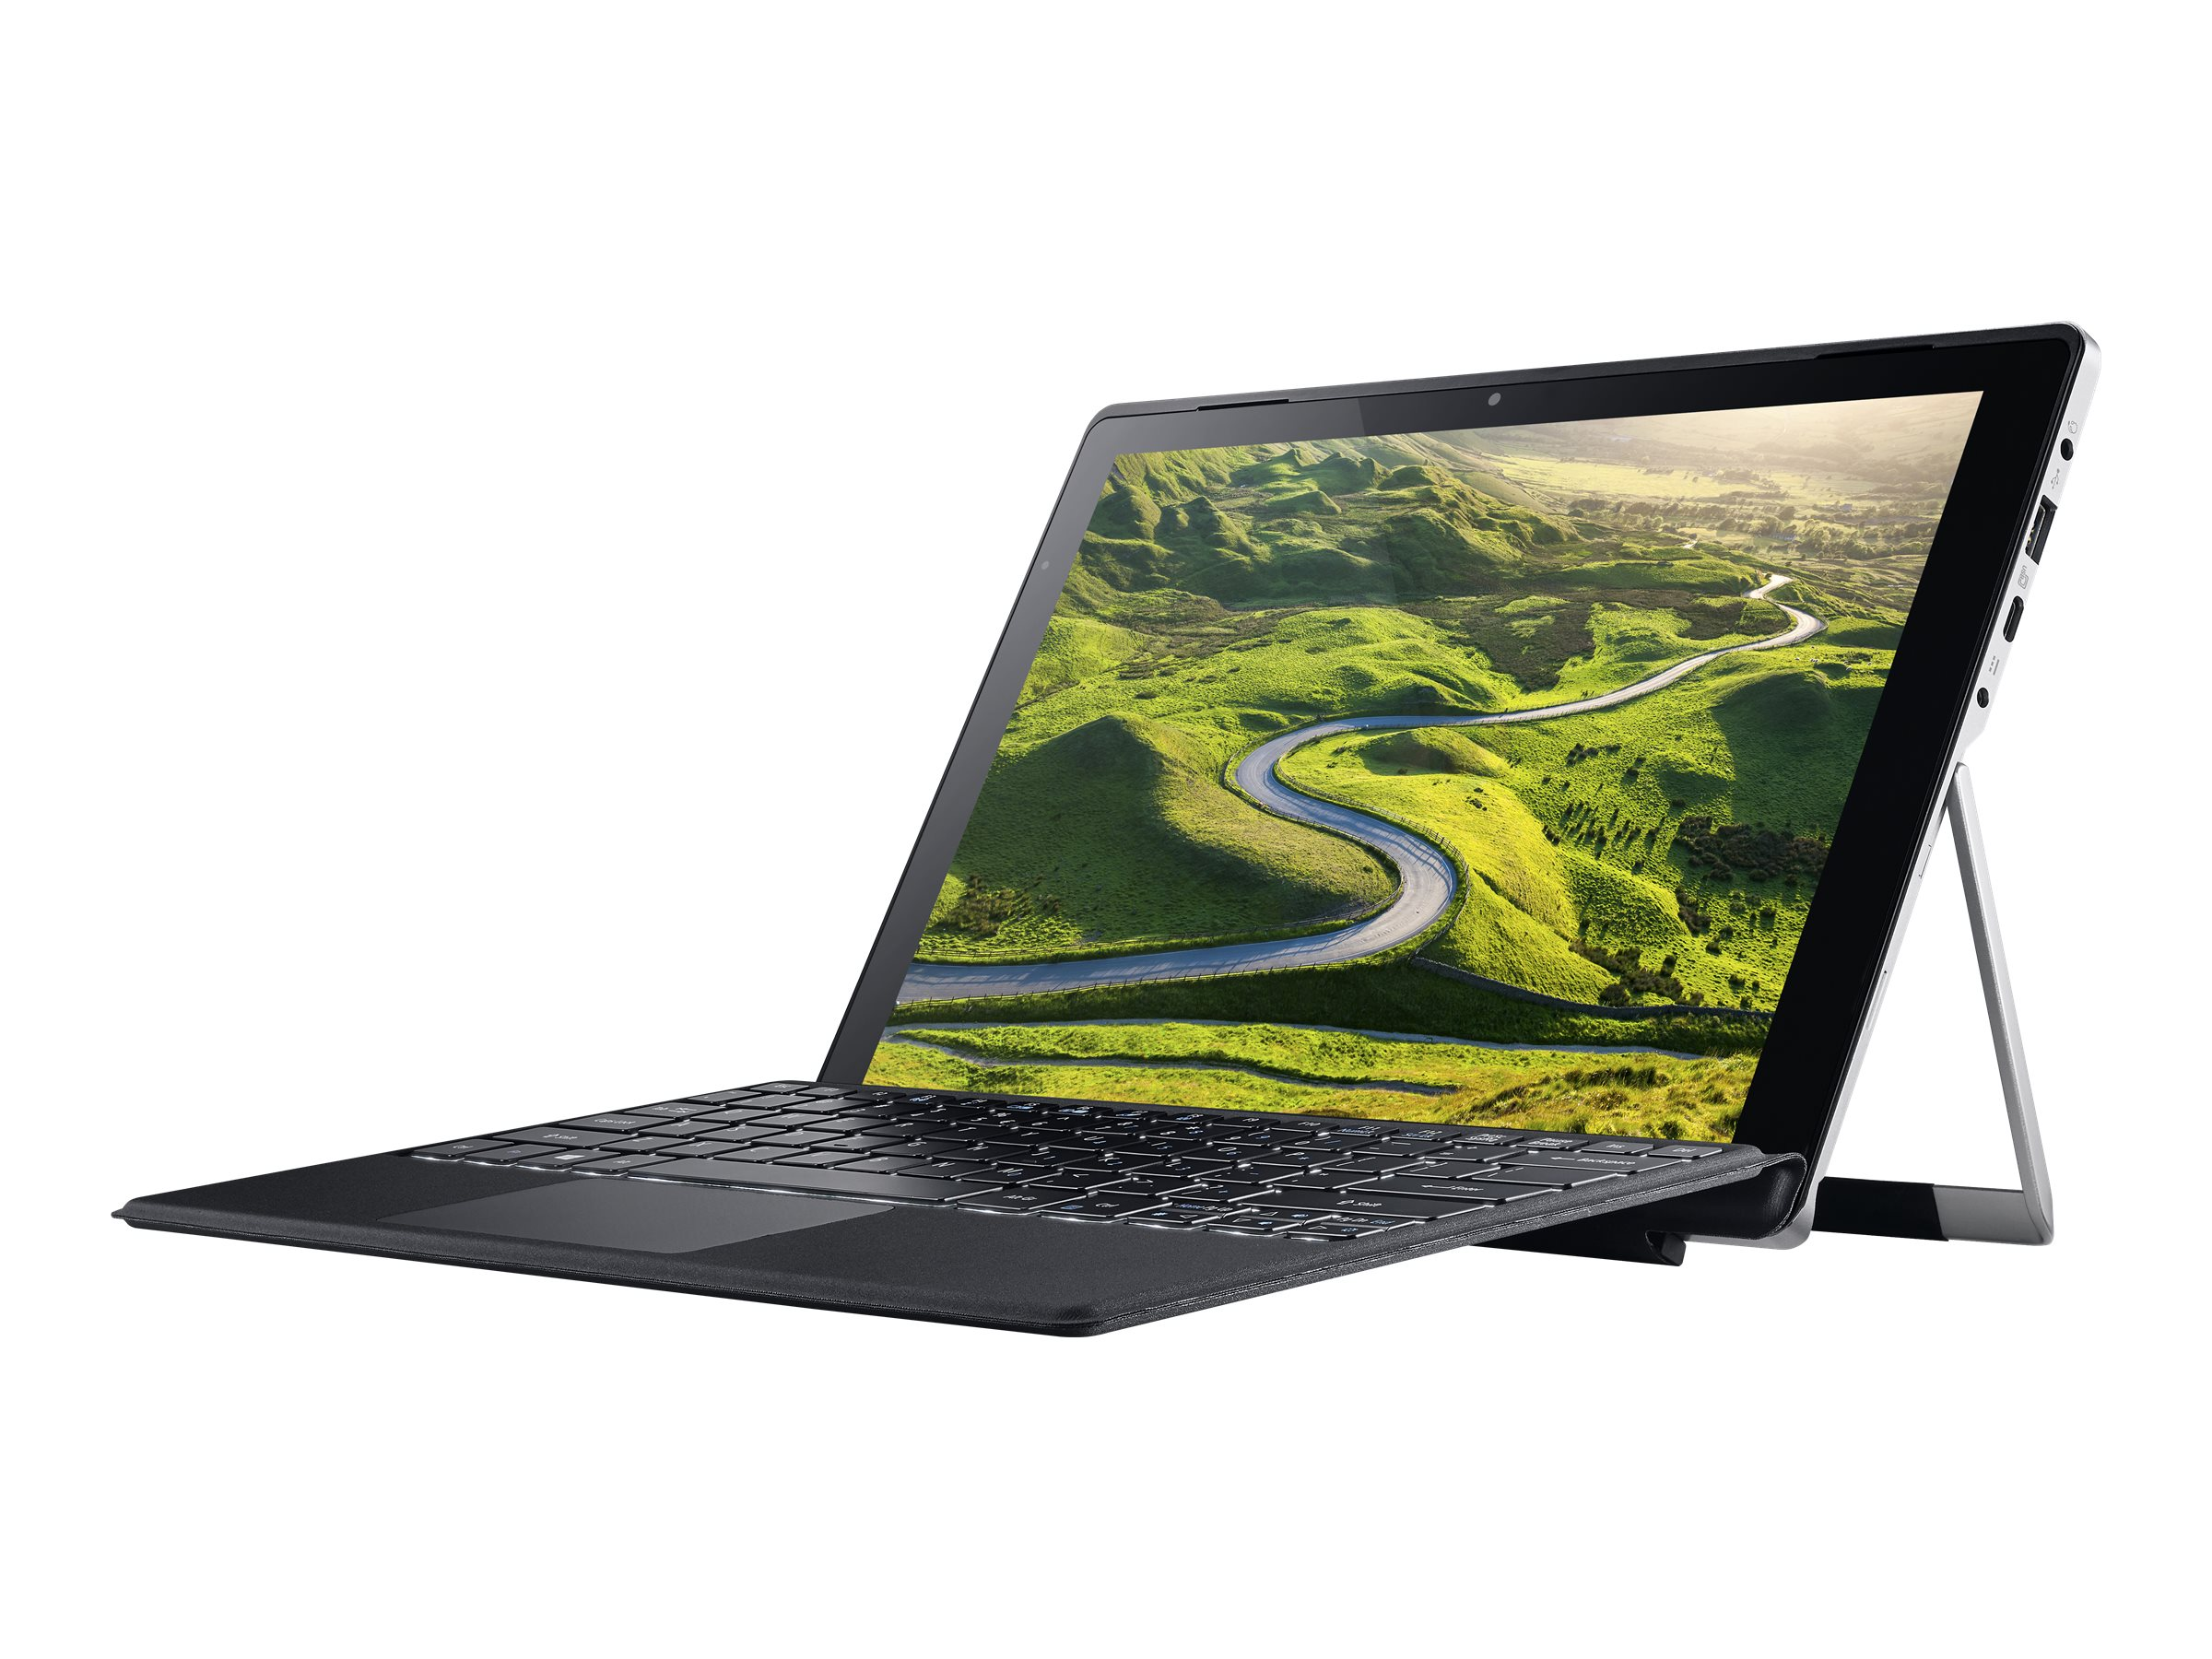 Acer Switch Alpha 12 SA5-271P-56H6 - Tablet - mit abnehmbarer Tastatur - Core i5 6200U / 2.3 GHz - Win 10 Pro 64-Bit - 4 GB RAM